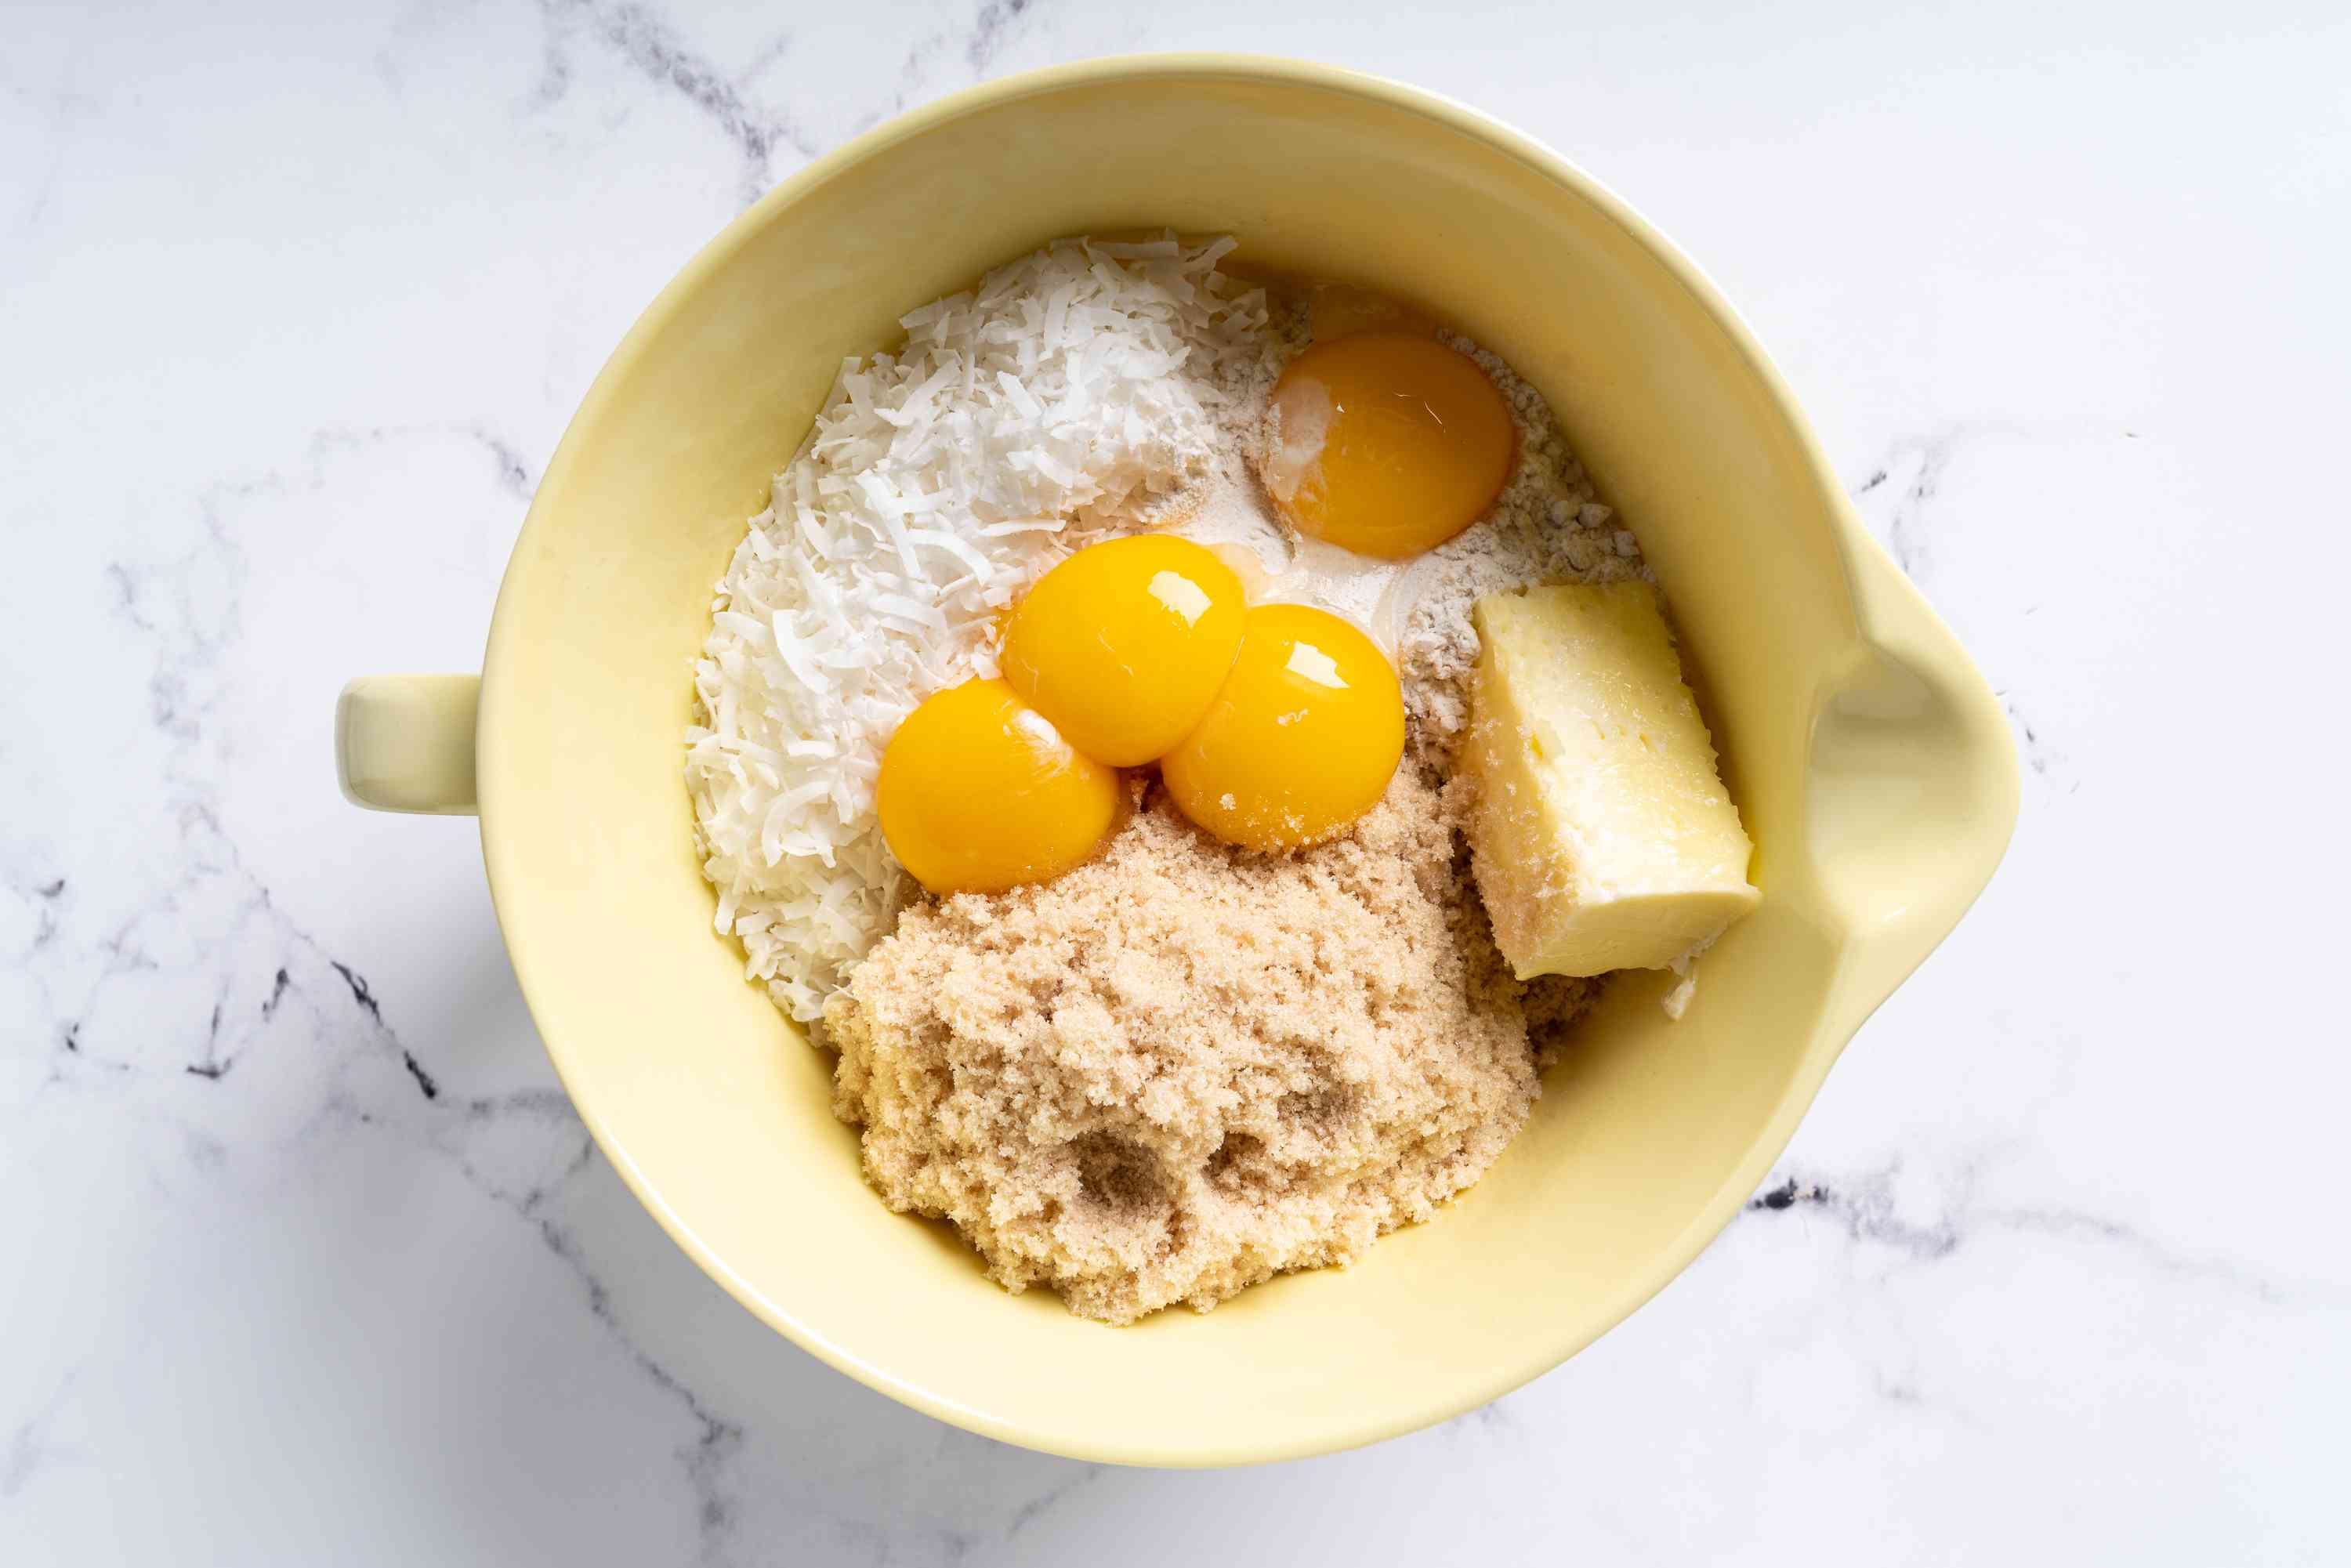 mix coconut flakes, flour, egg yolks, brown sugar, butter and extract together in a bowl